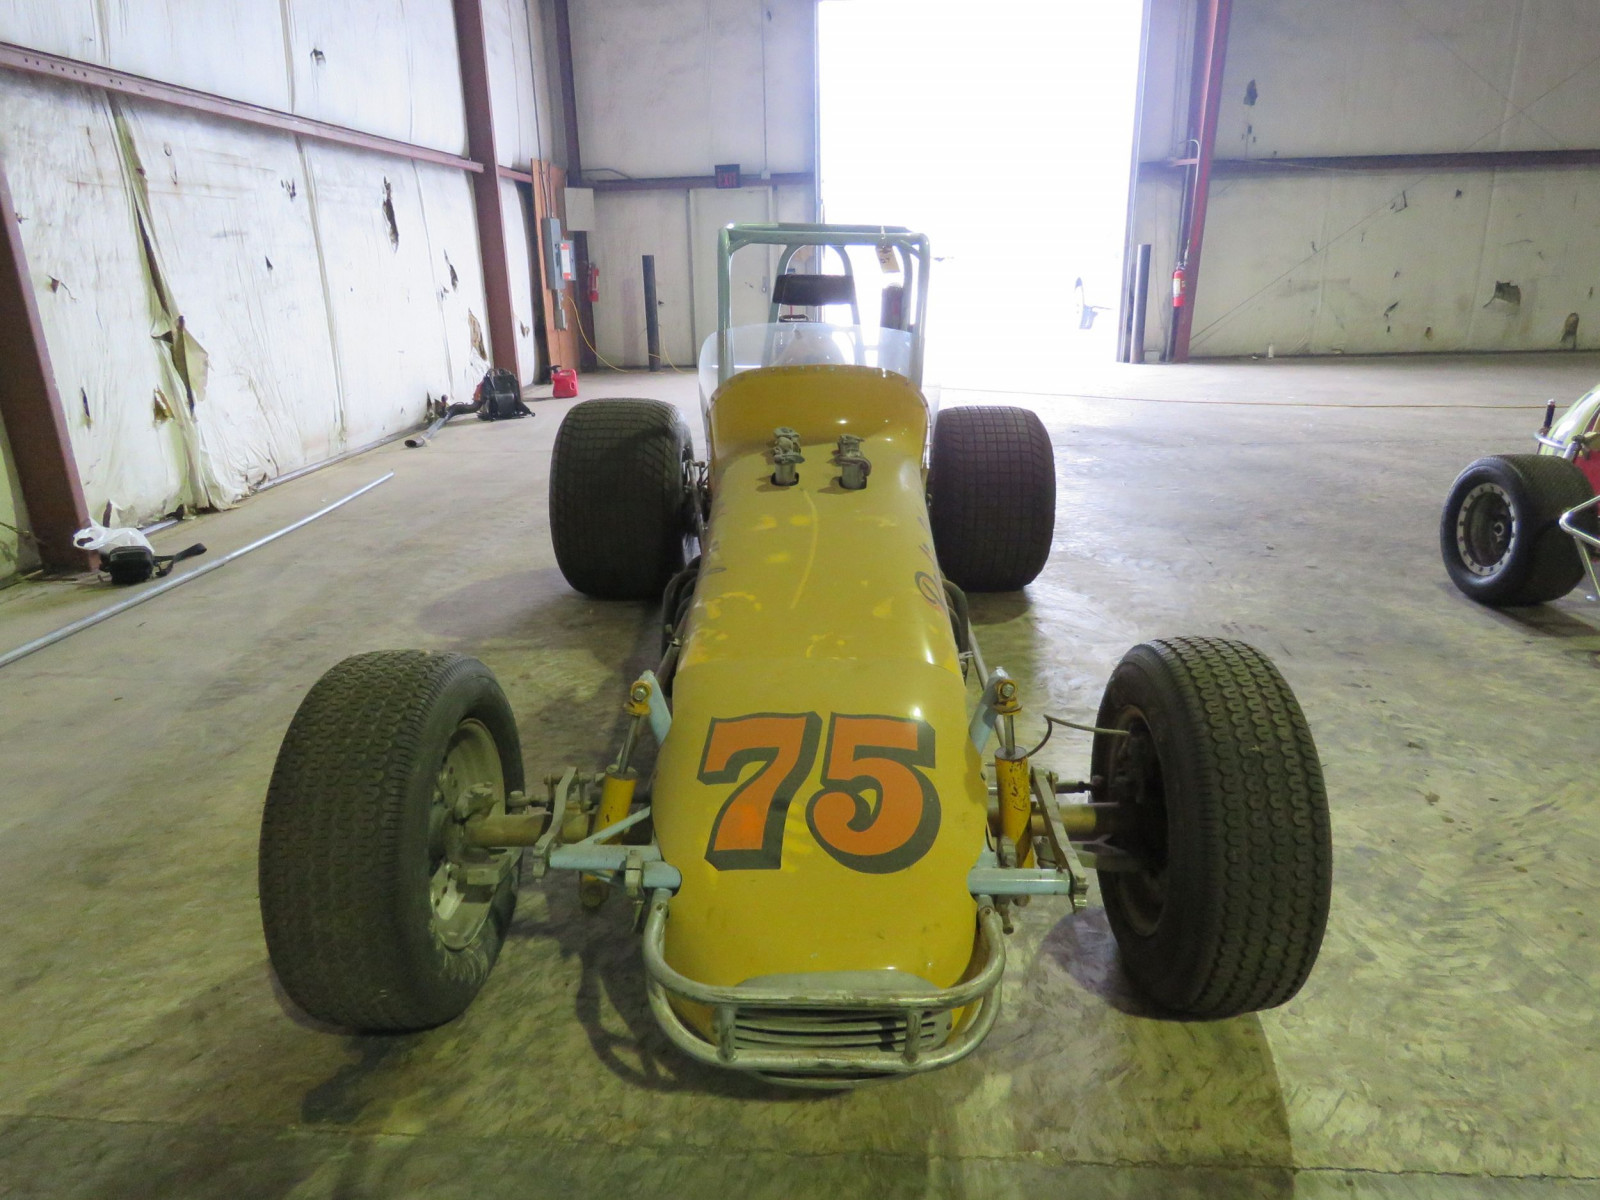 1972 fuel Injected Midget Race Car - Image 9